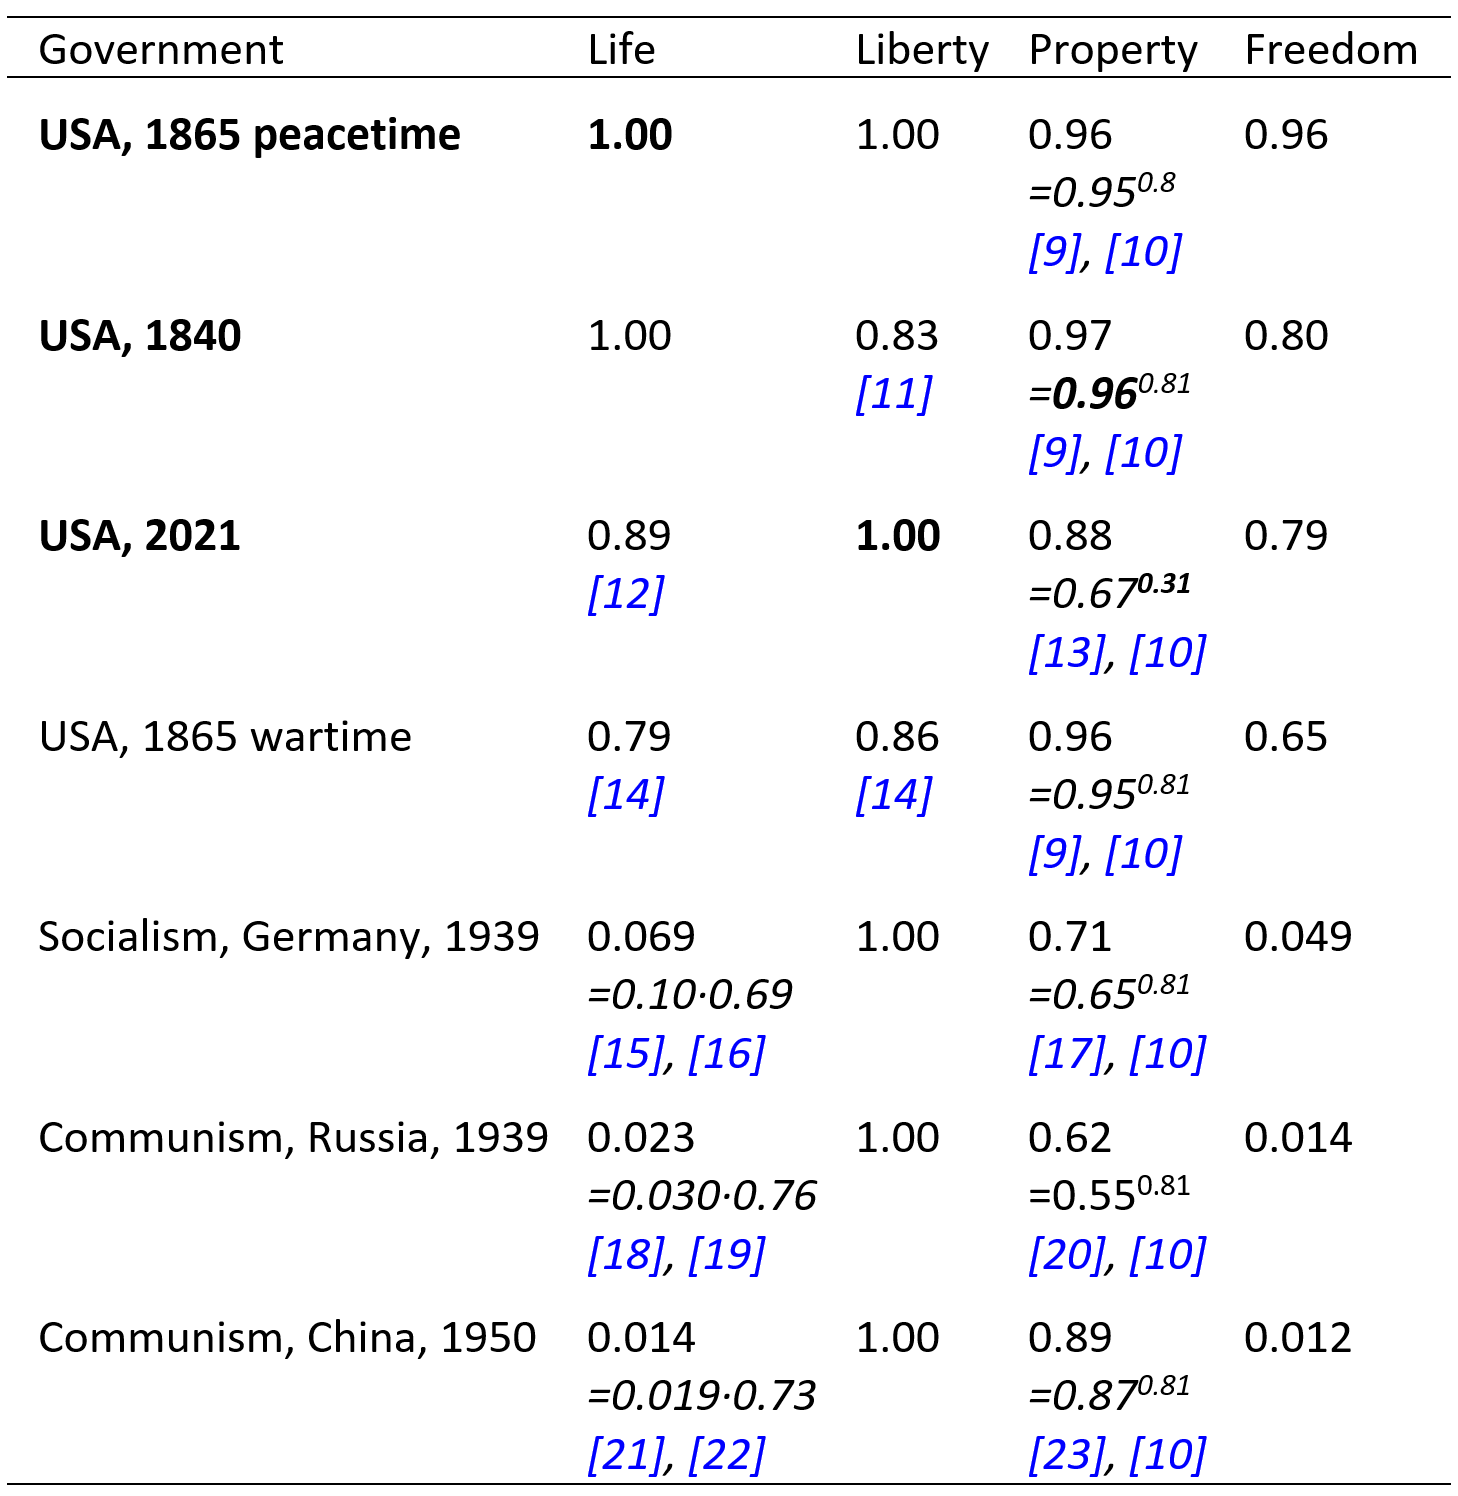 Table 3. Life, liberty, and property rights can be secured best by making USA governments free from crony socialism.